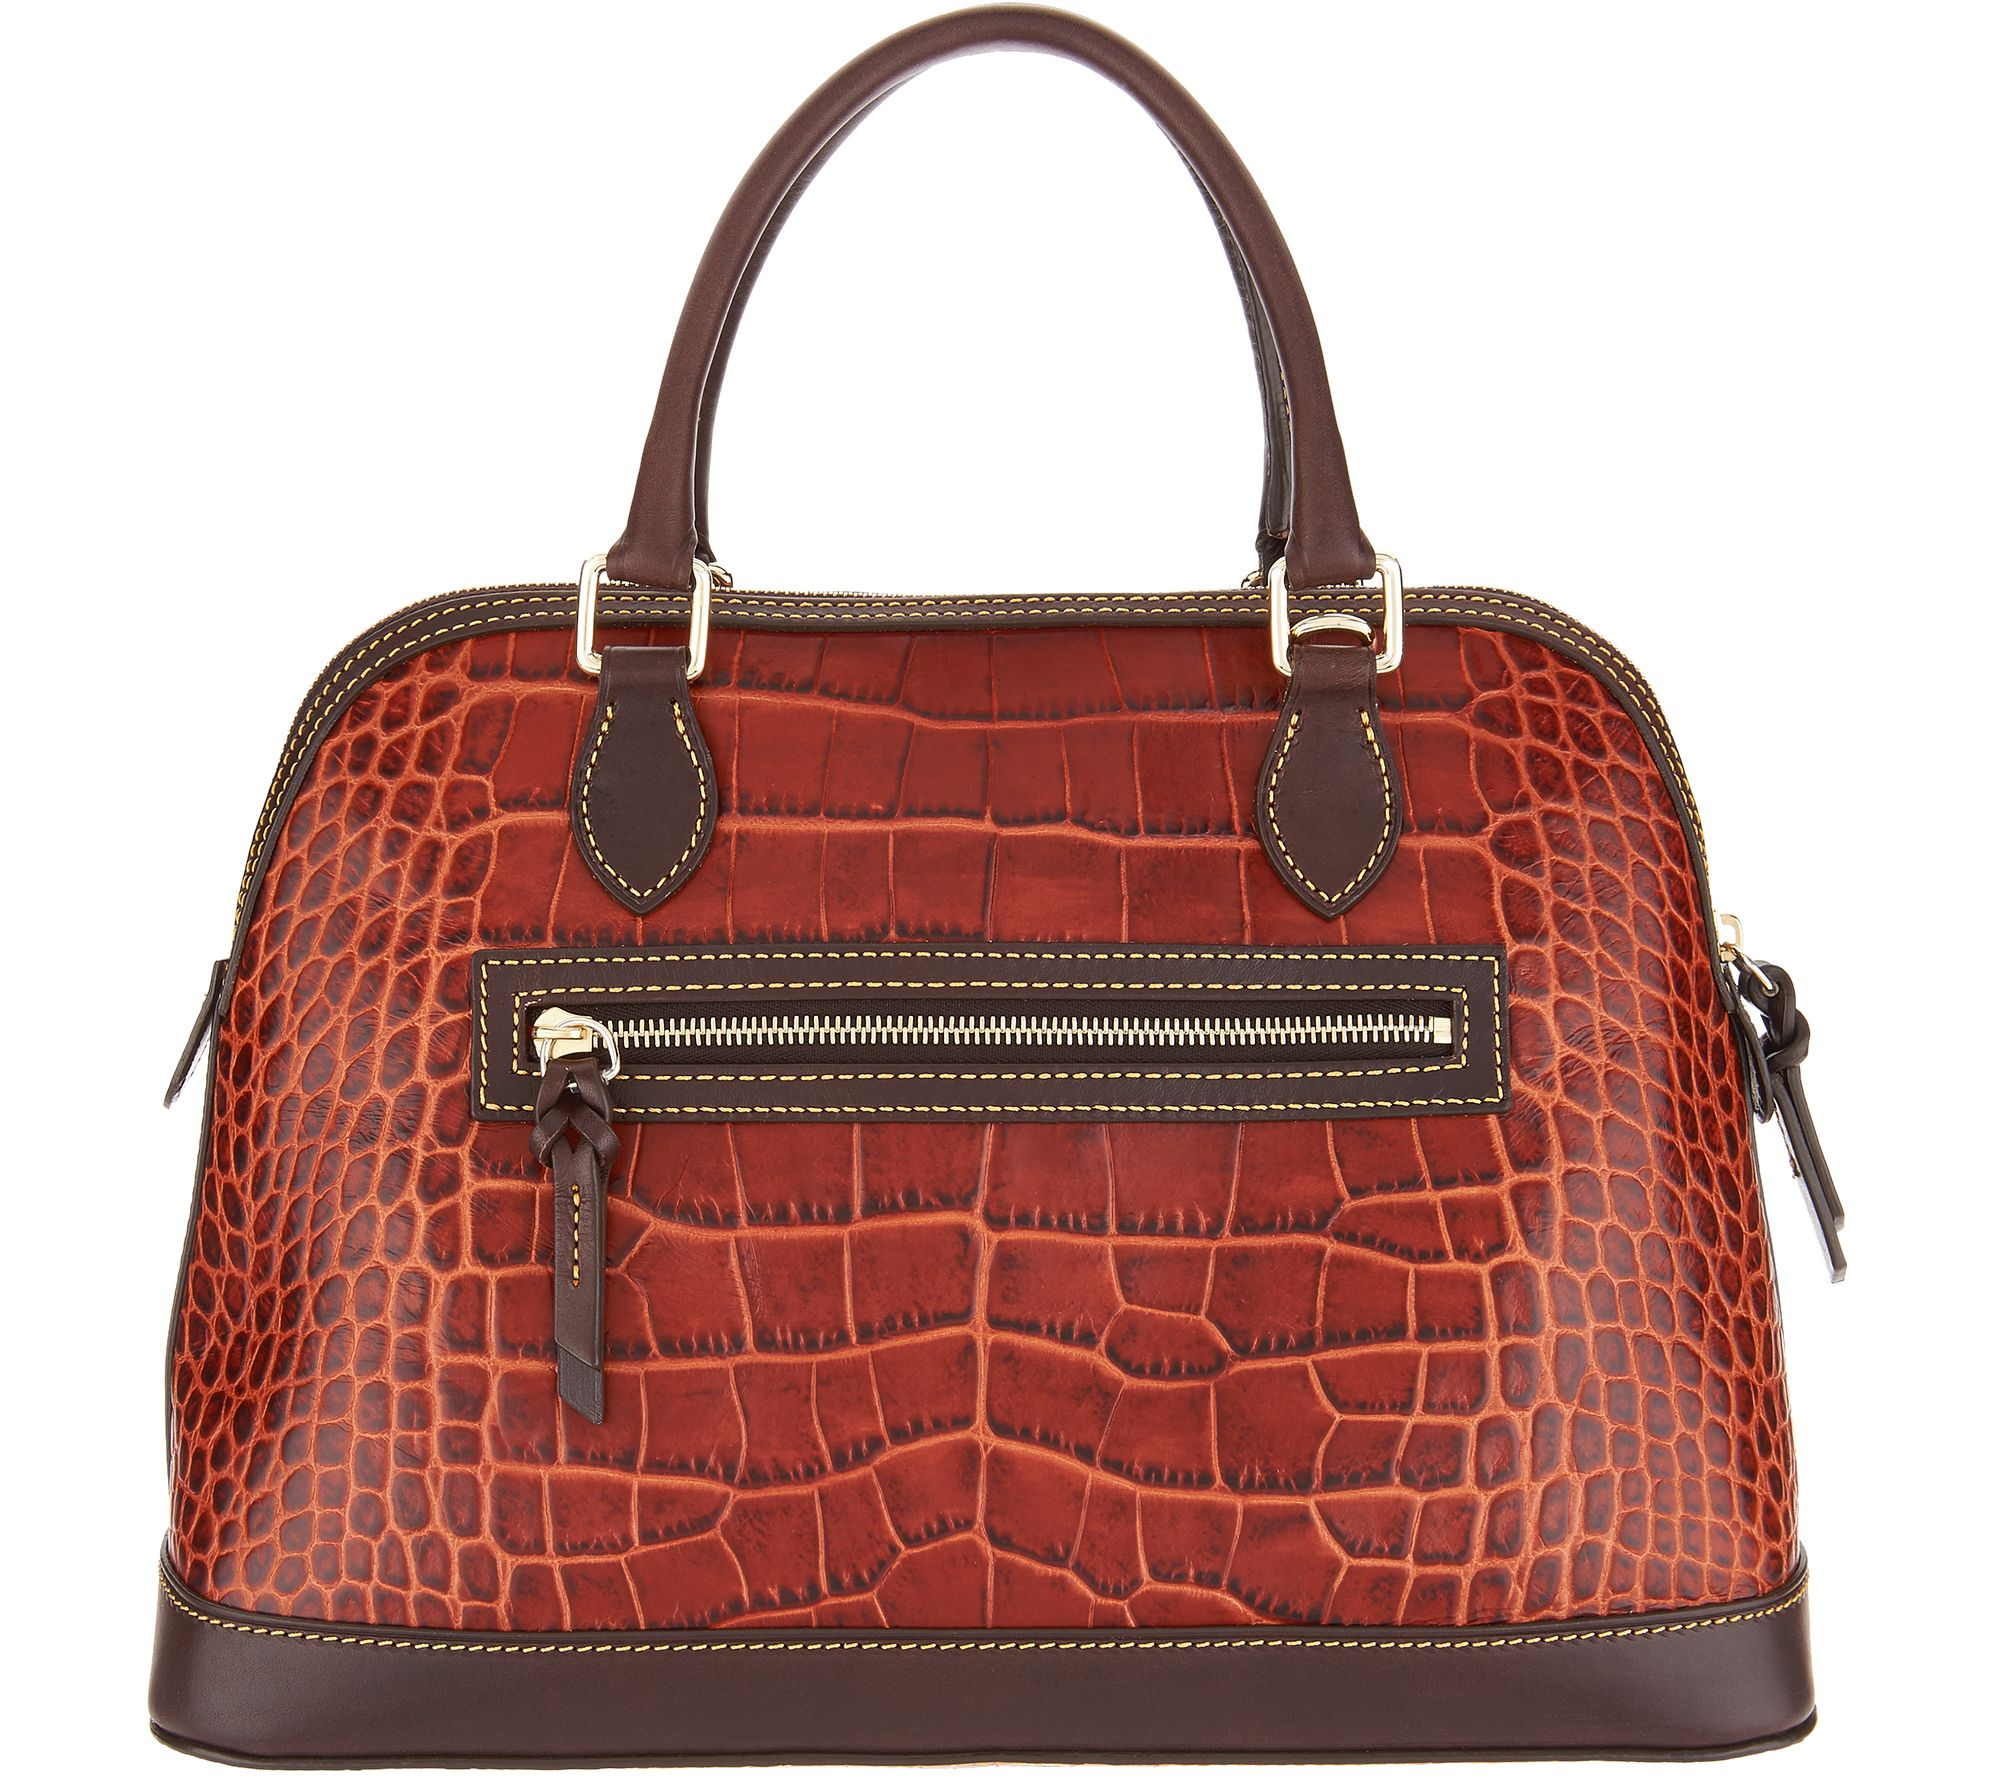 7446622971a3 Dooney   Bourke Croco Leather Deana Satchel Handbag - Page 1 — QVC.com